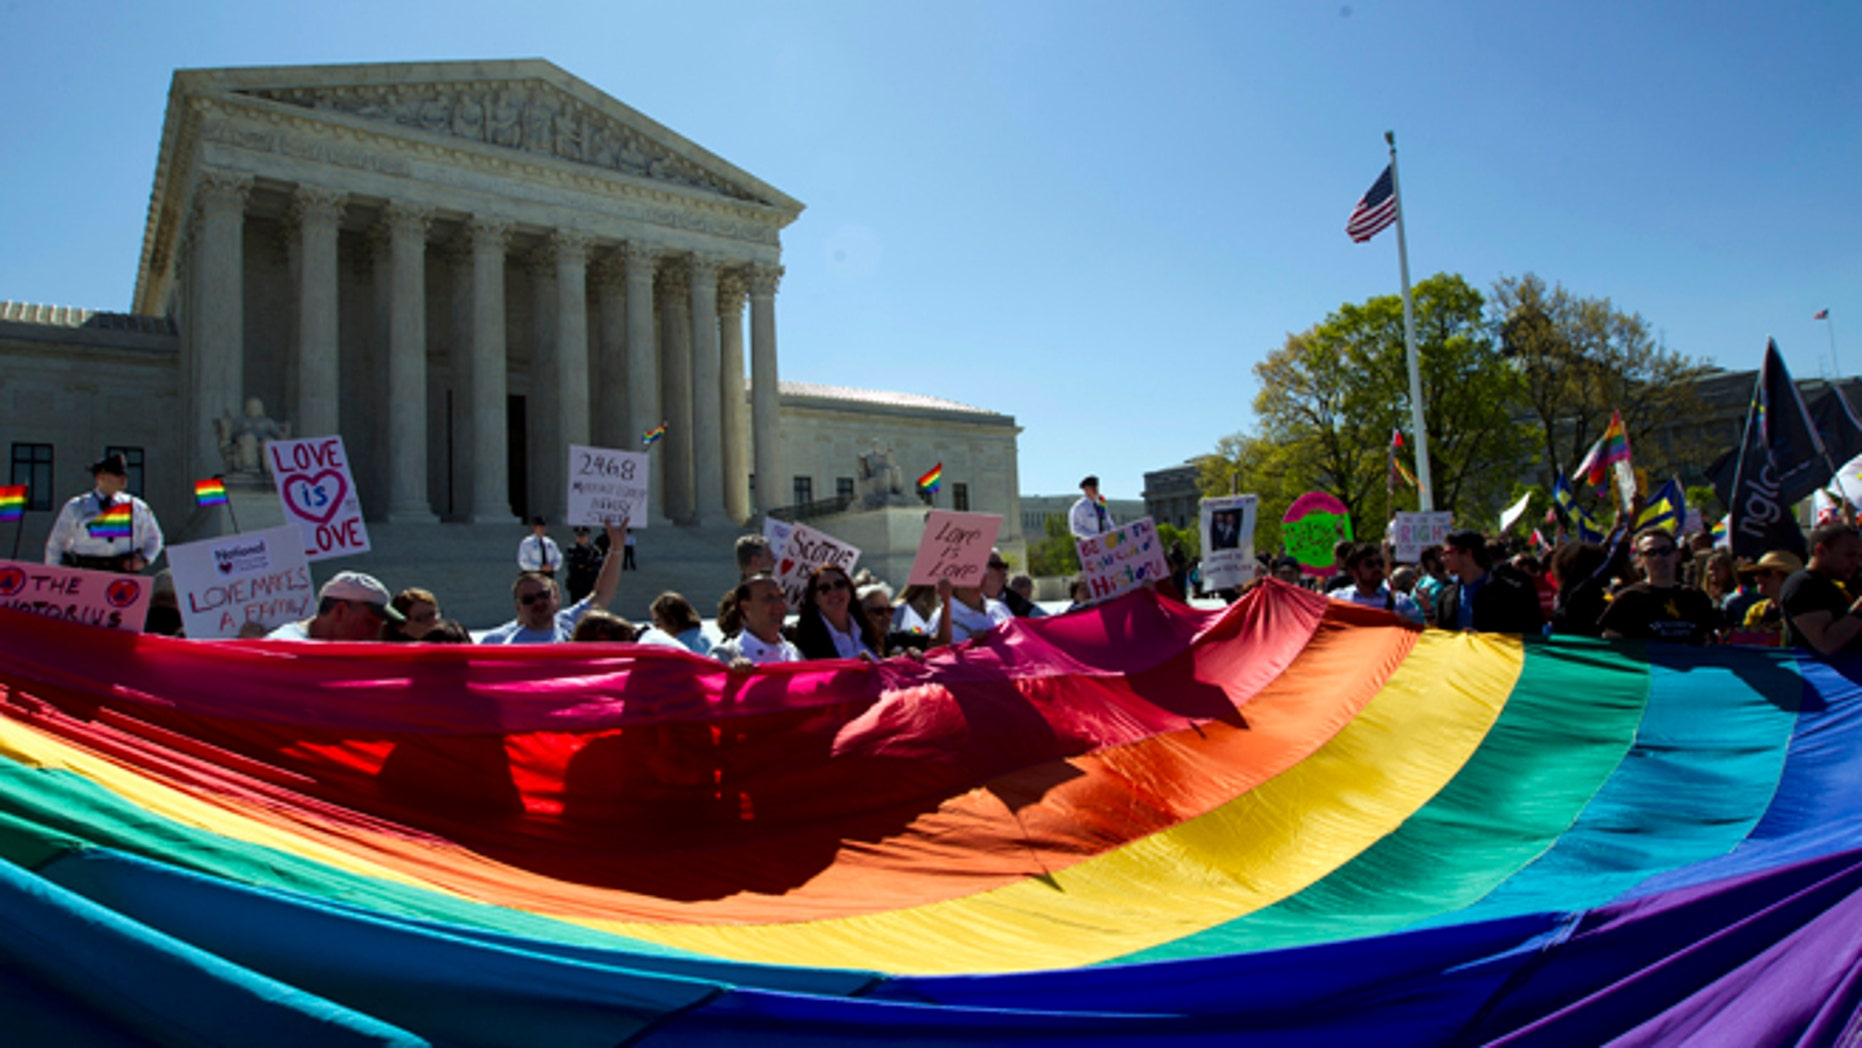 FILE - In this April 28, 2015, file photo, demonstrators stand in front of a rainbow flag of the Supreme Court in Washington, as the court was set to hear historic arguments in cases that could make same-sex marriage the law of the land. Gay and lesbian couples could face legal chaos if the Supreme Court rules against same-sex marriage in the next few weeks. Same-sex weddings could come to a halt in many states, depending on a confusing mix of lower-court decisions and the sometimes-contradictory views of state and local officials. Among the 36 states in which same-sex couples can now marry are 20 in which federal judges invoked the Constitution to strike down marriage bans. (AP Photo/Jose Luis Magana, File)